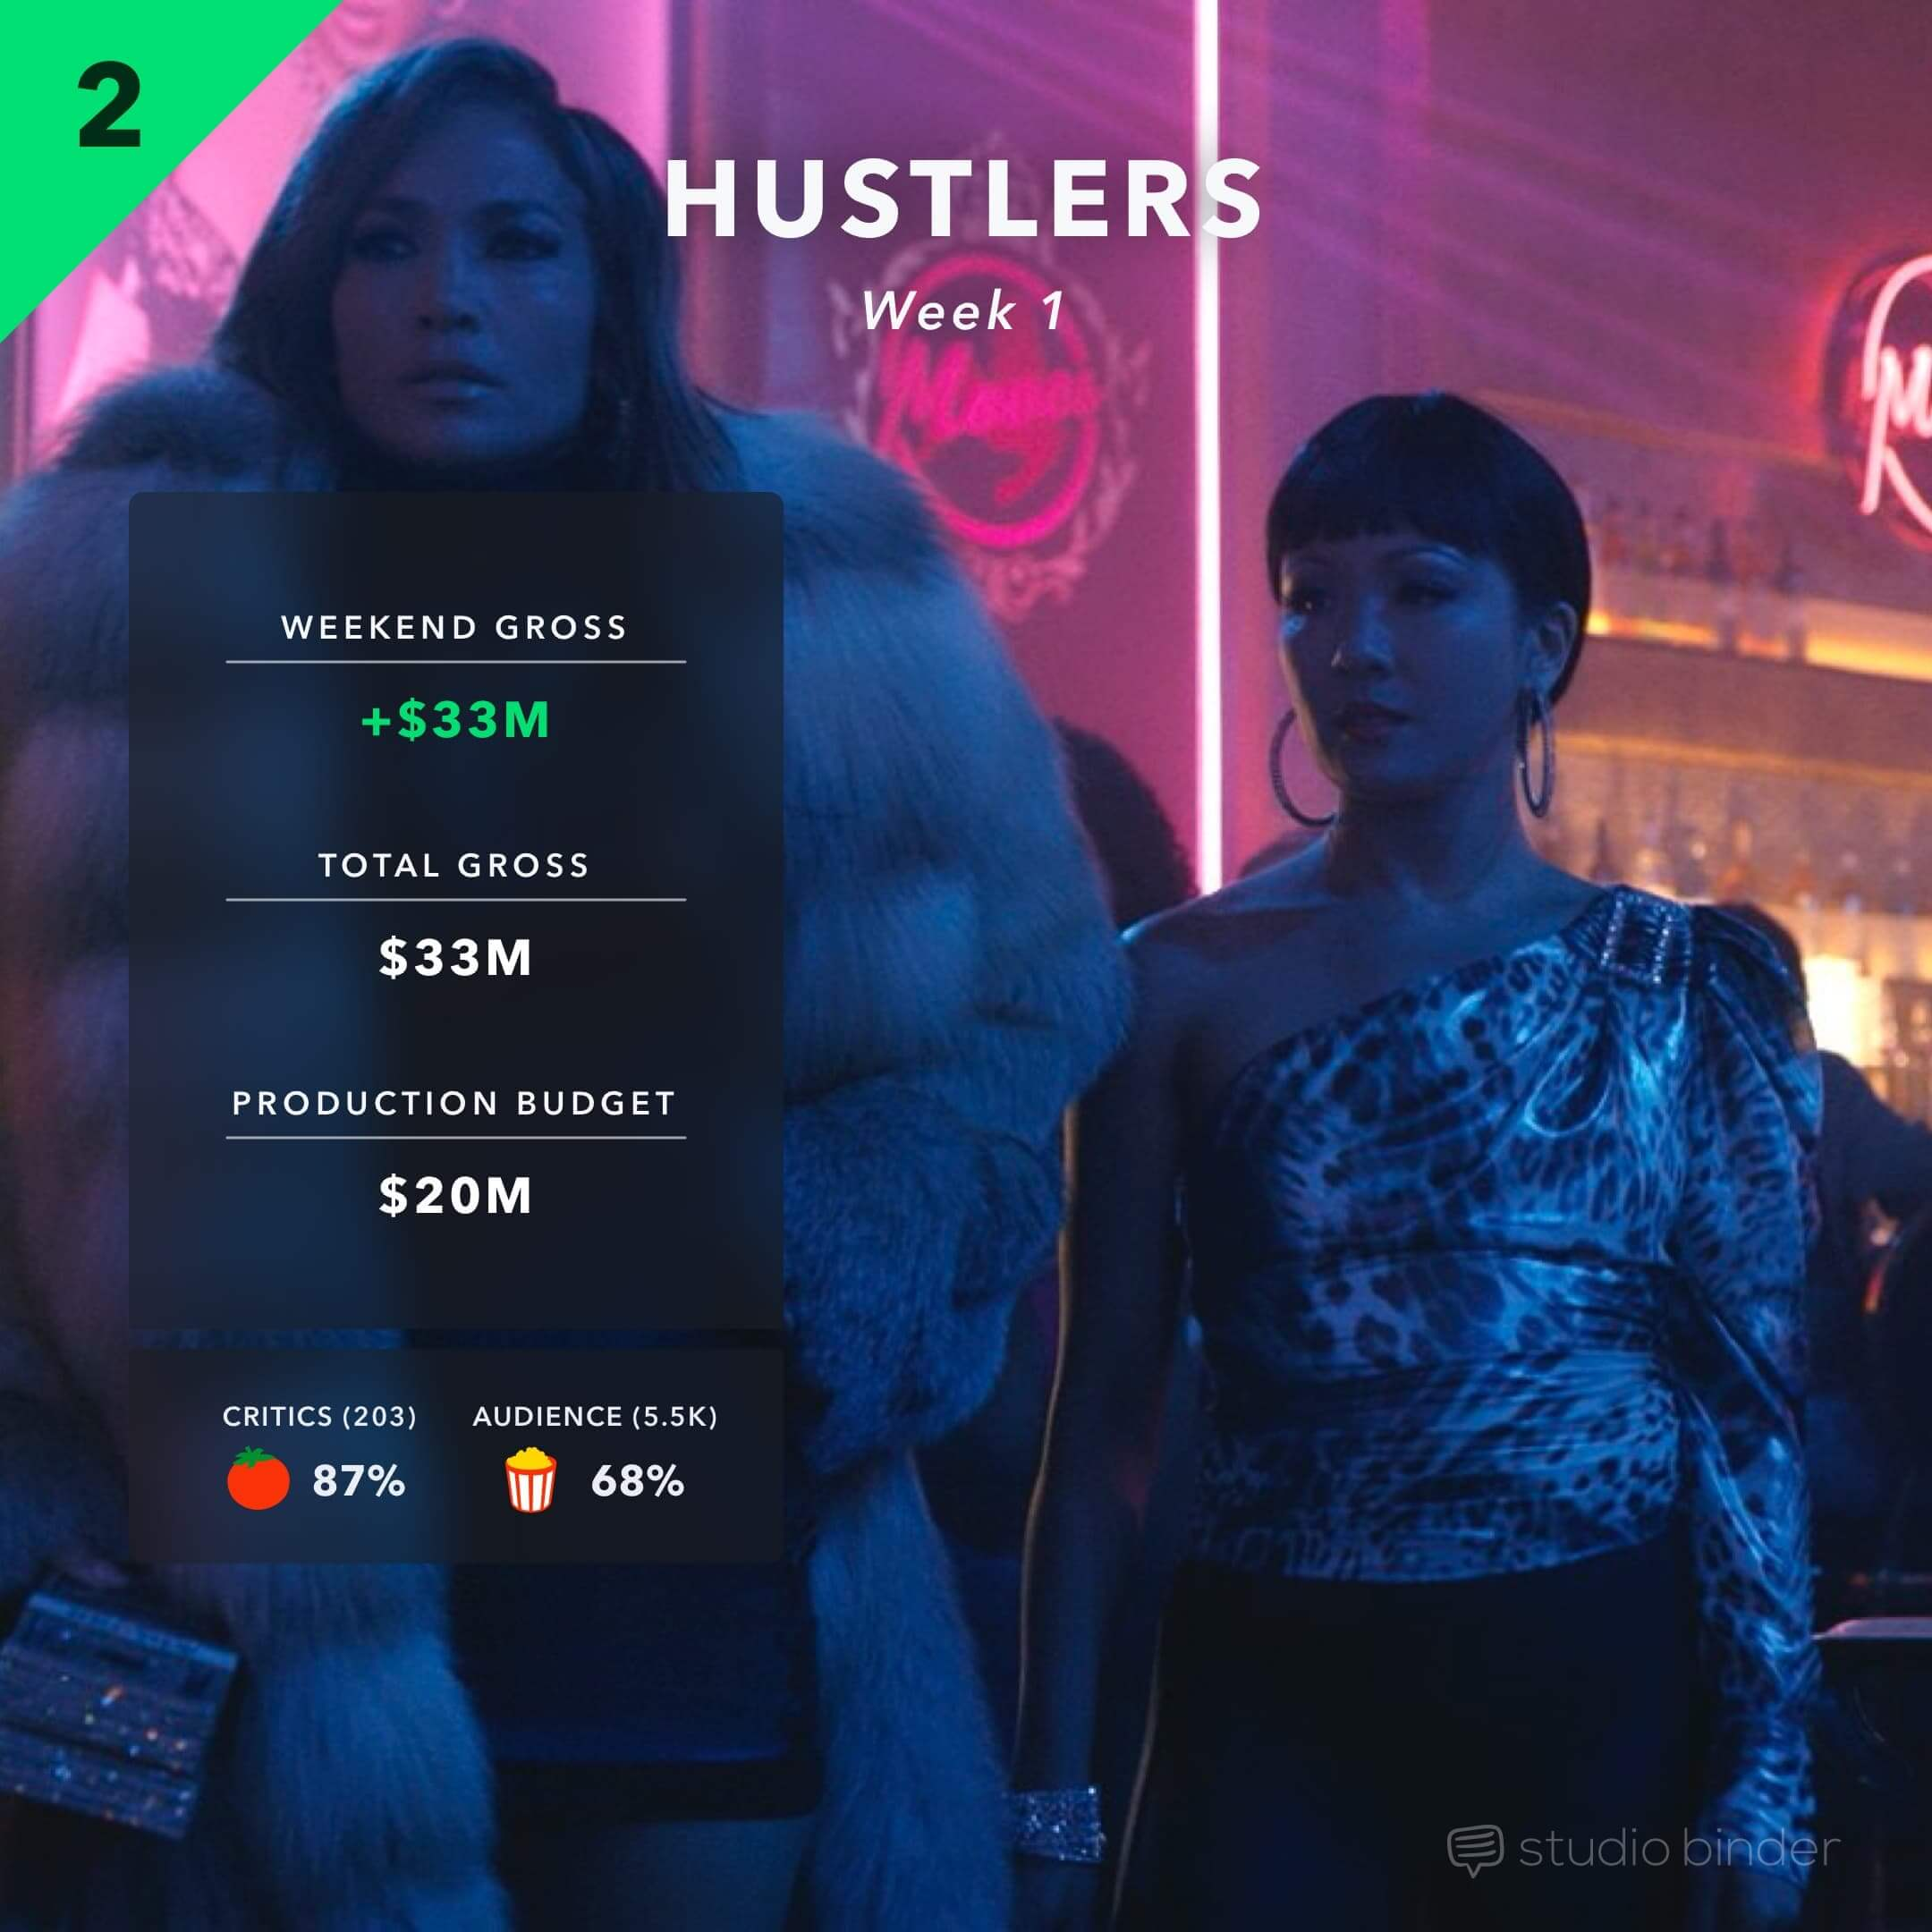 Weekend At The Box Office - 2 - Hustlers 1